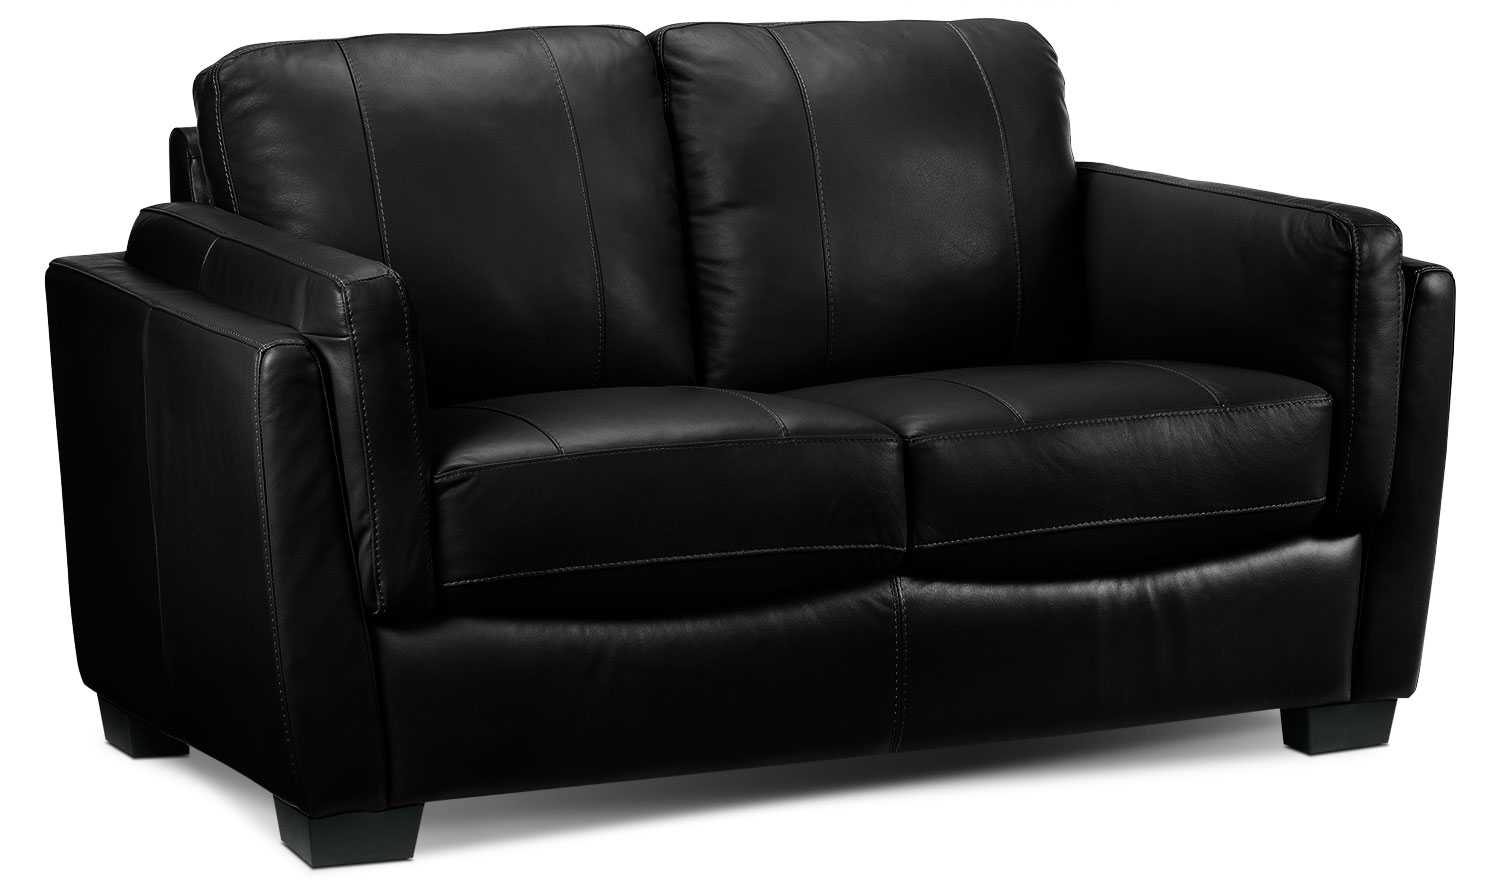 Living Room Furniture - Isadore Loveseat - Black